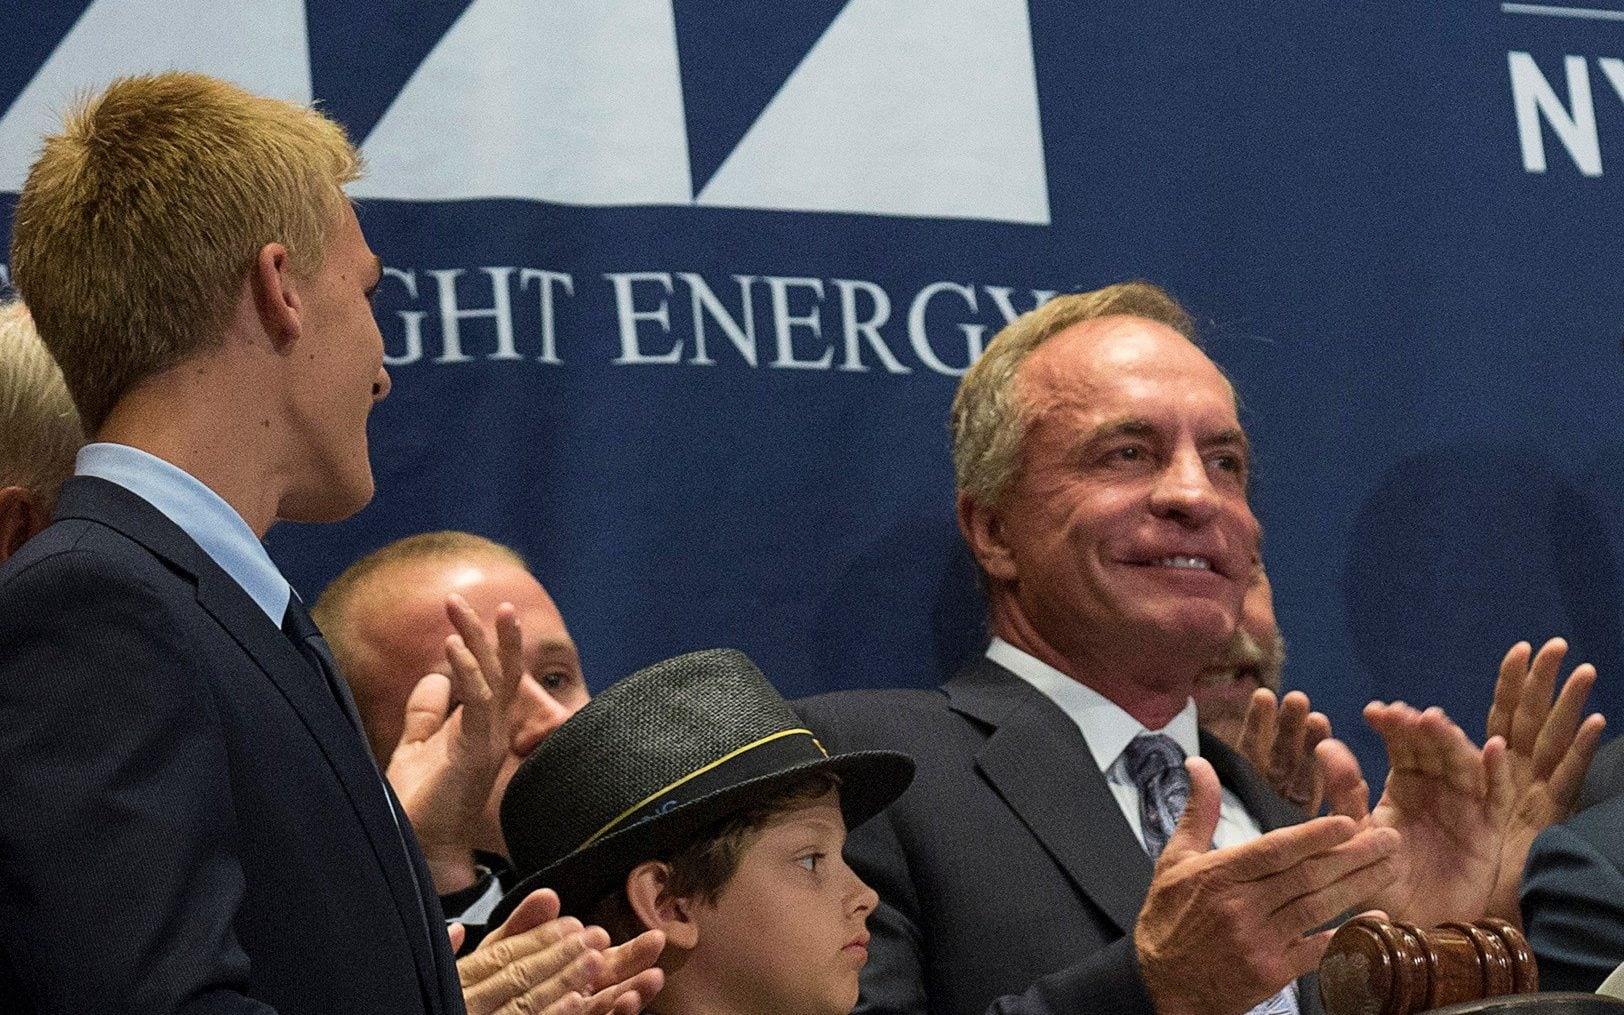 Chris Cline, Americas King of Coal killed in helicopter crash